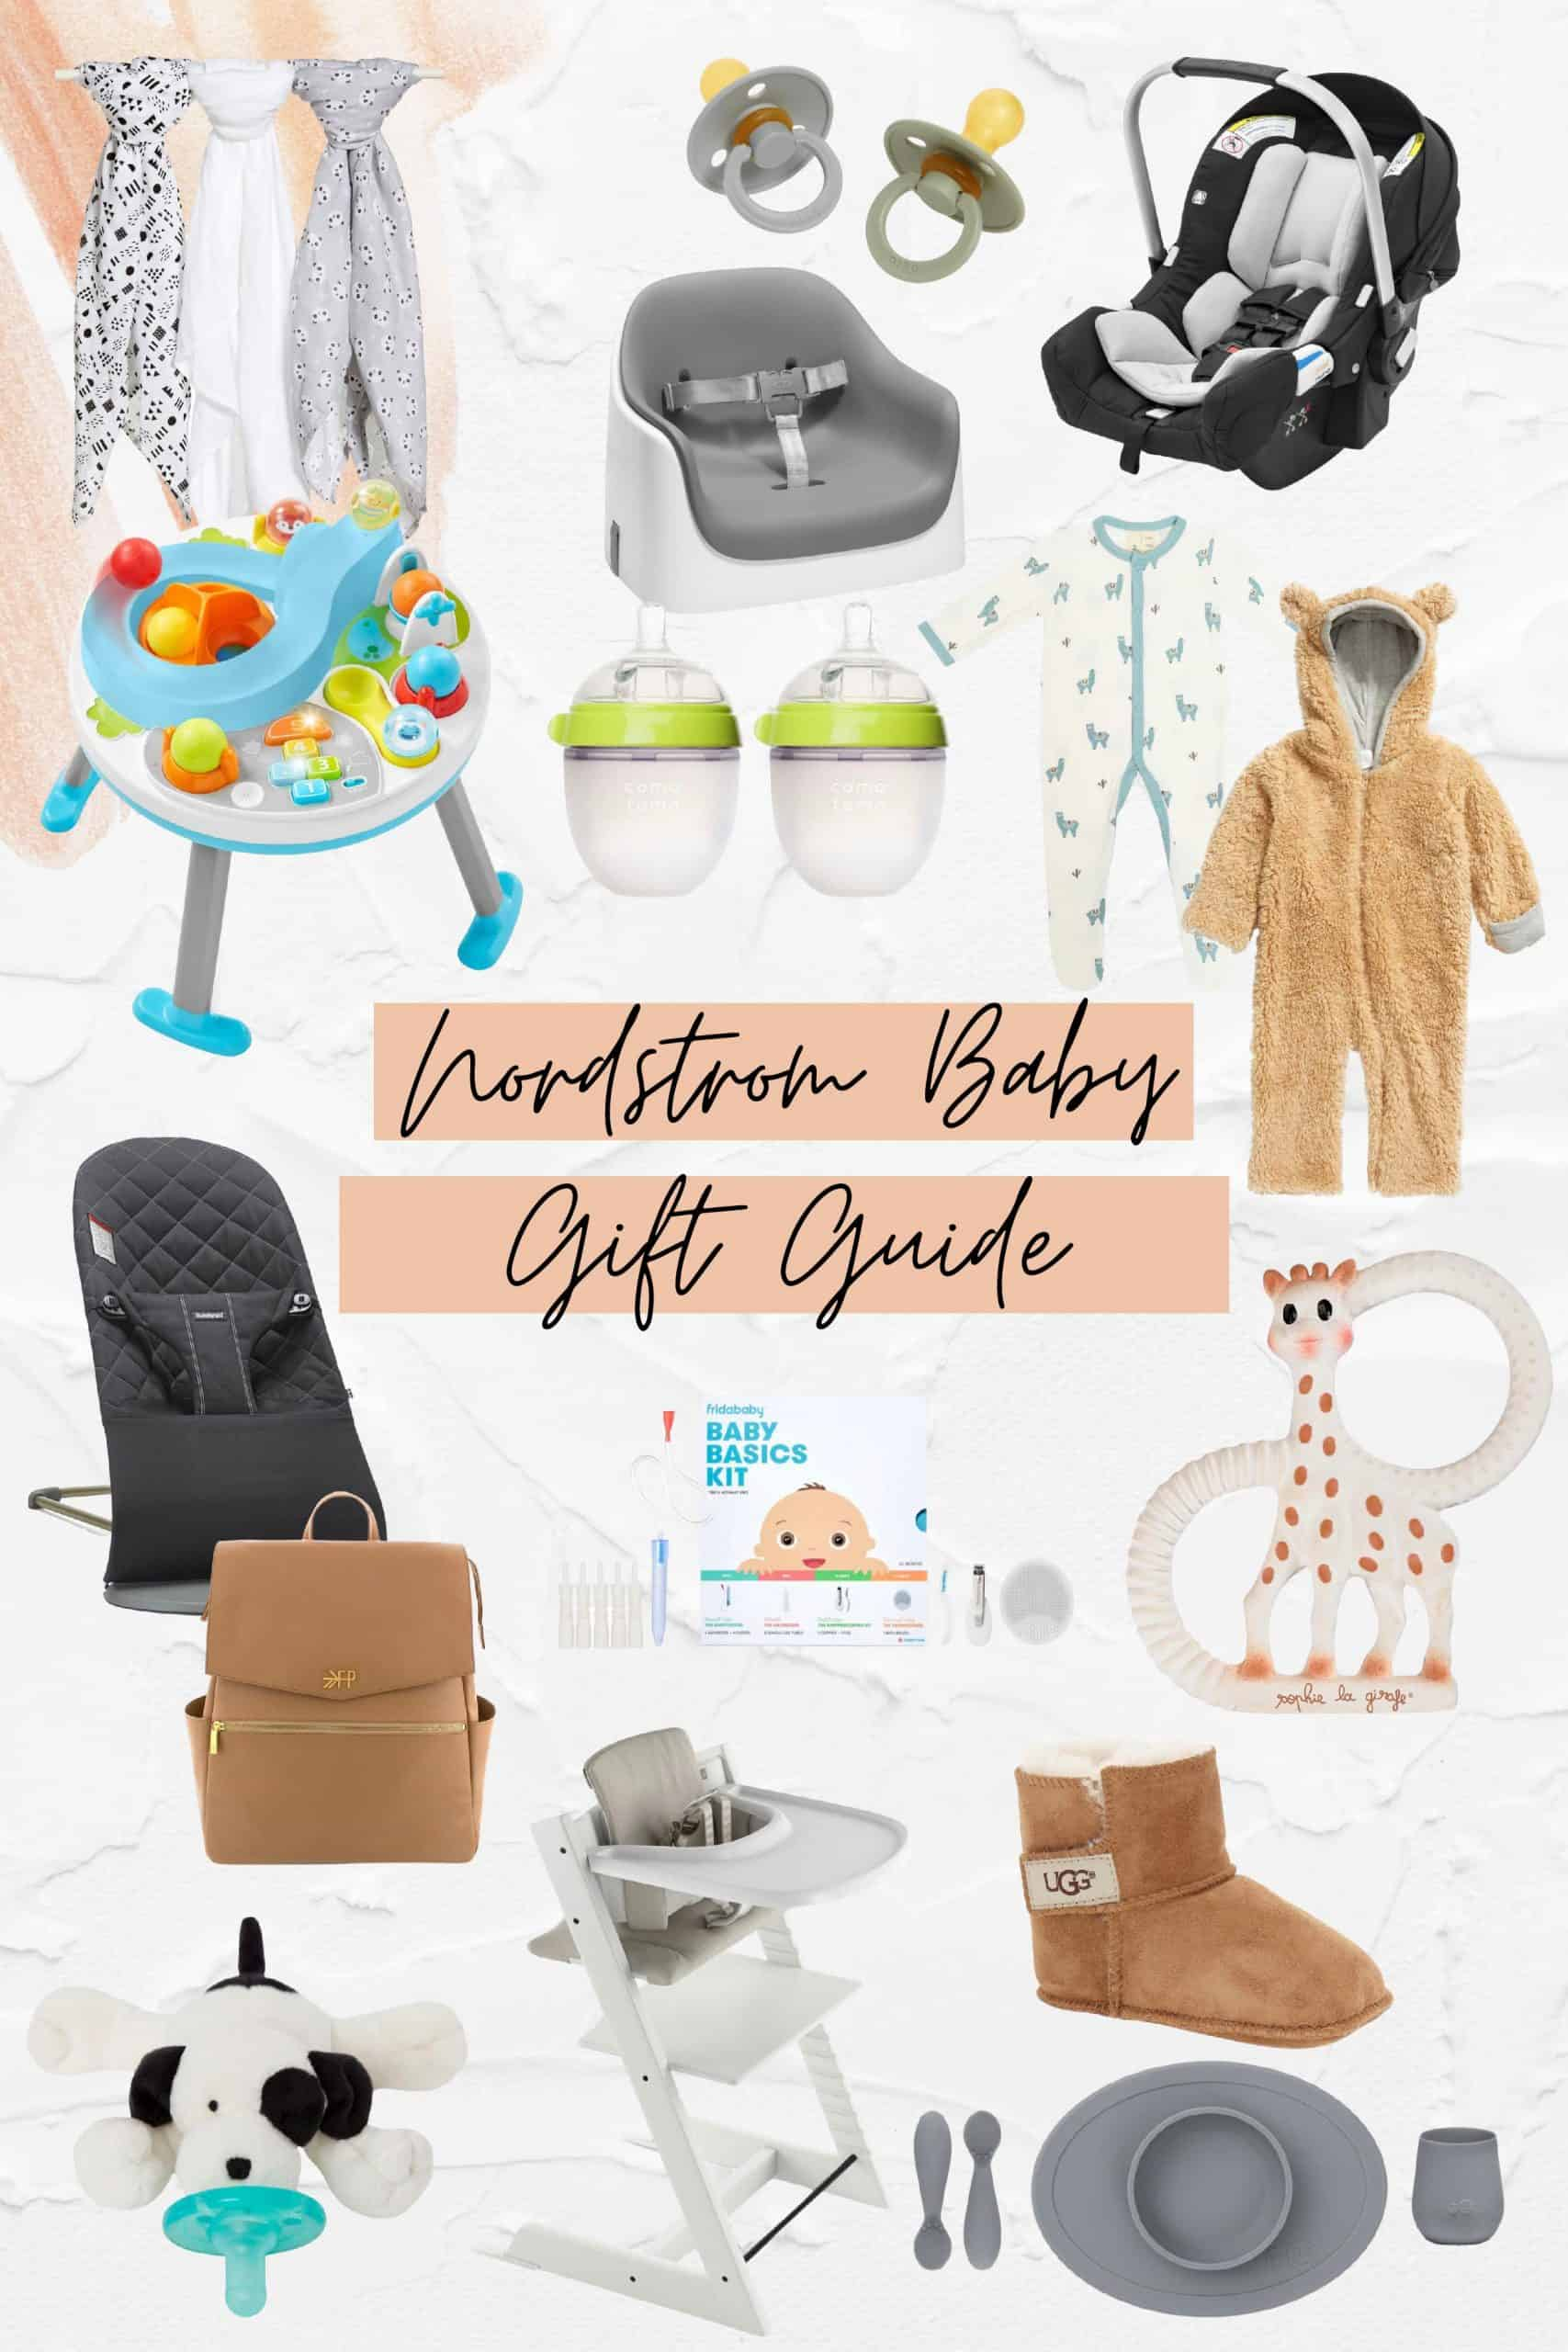 Birth Story by popular Dallas motherhood blog, Glamorous Versatility: collage image of a Freshly Picked diaper bag, baby bouncers, high chiair, binky, Baby Ugg boots, giraffe teether, silicon, Baby Basics kit, bottles, blankets, onesies, and a car seat.